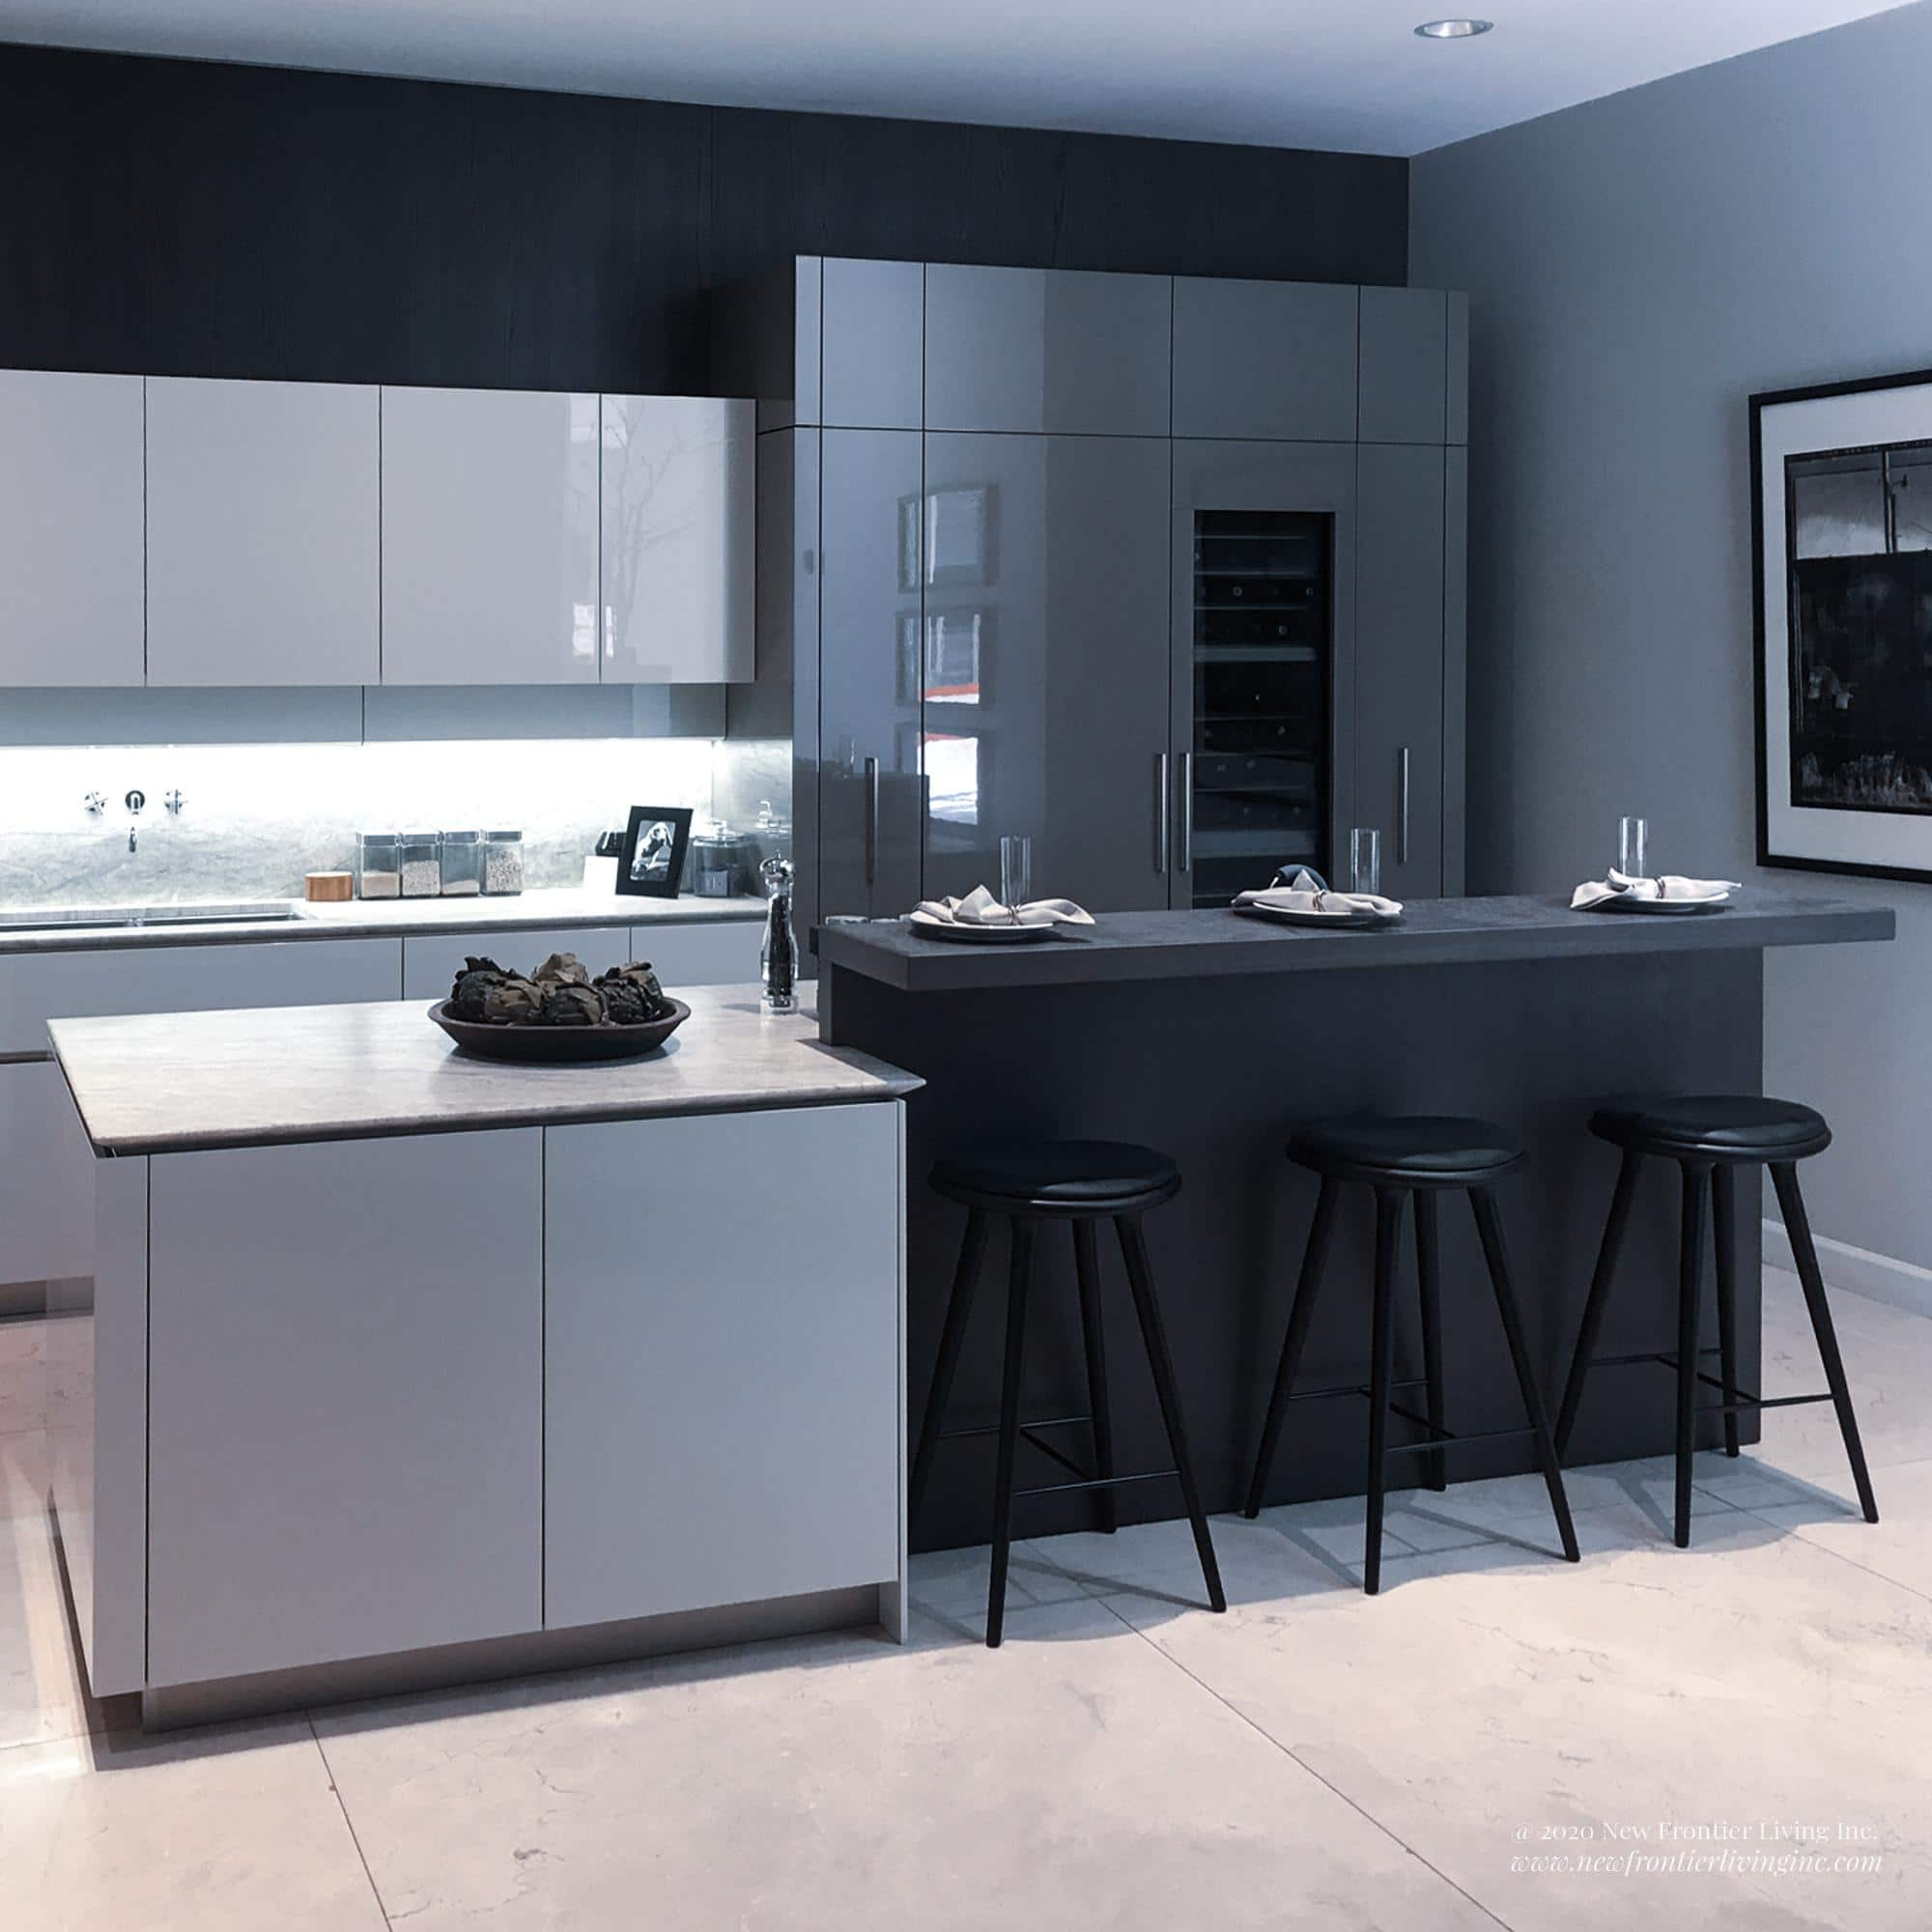 Alternative black and white kitchen cabinetry sections and two islands, white work island and seating black island